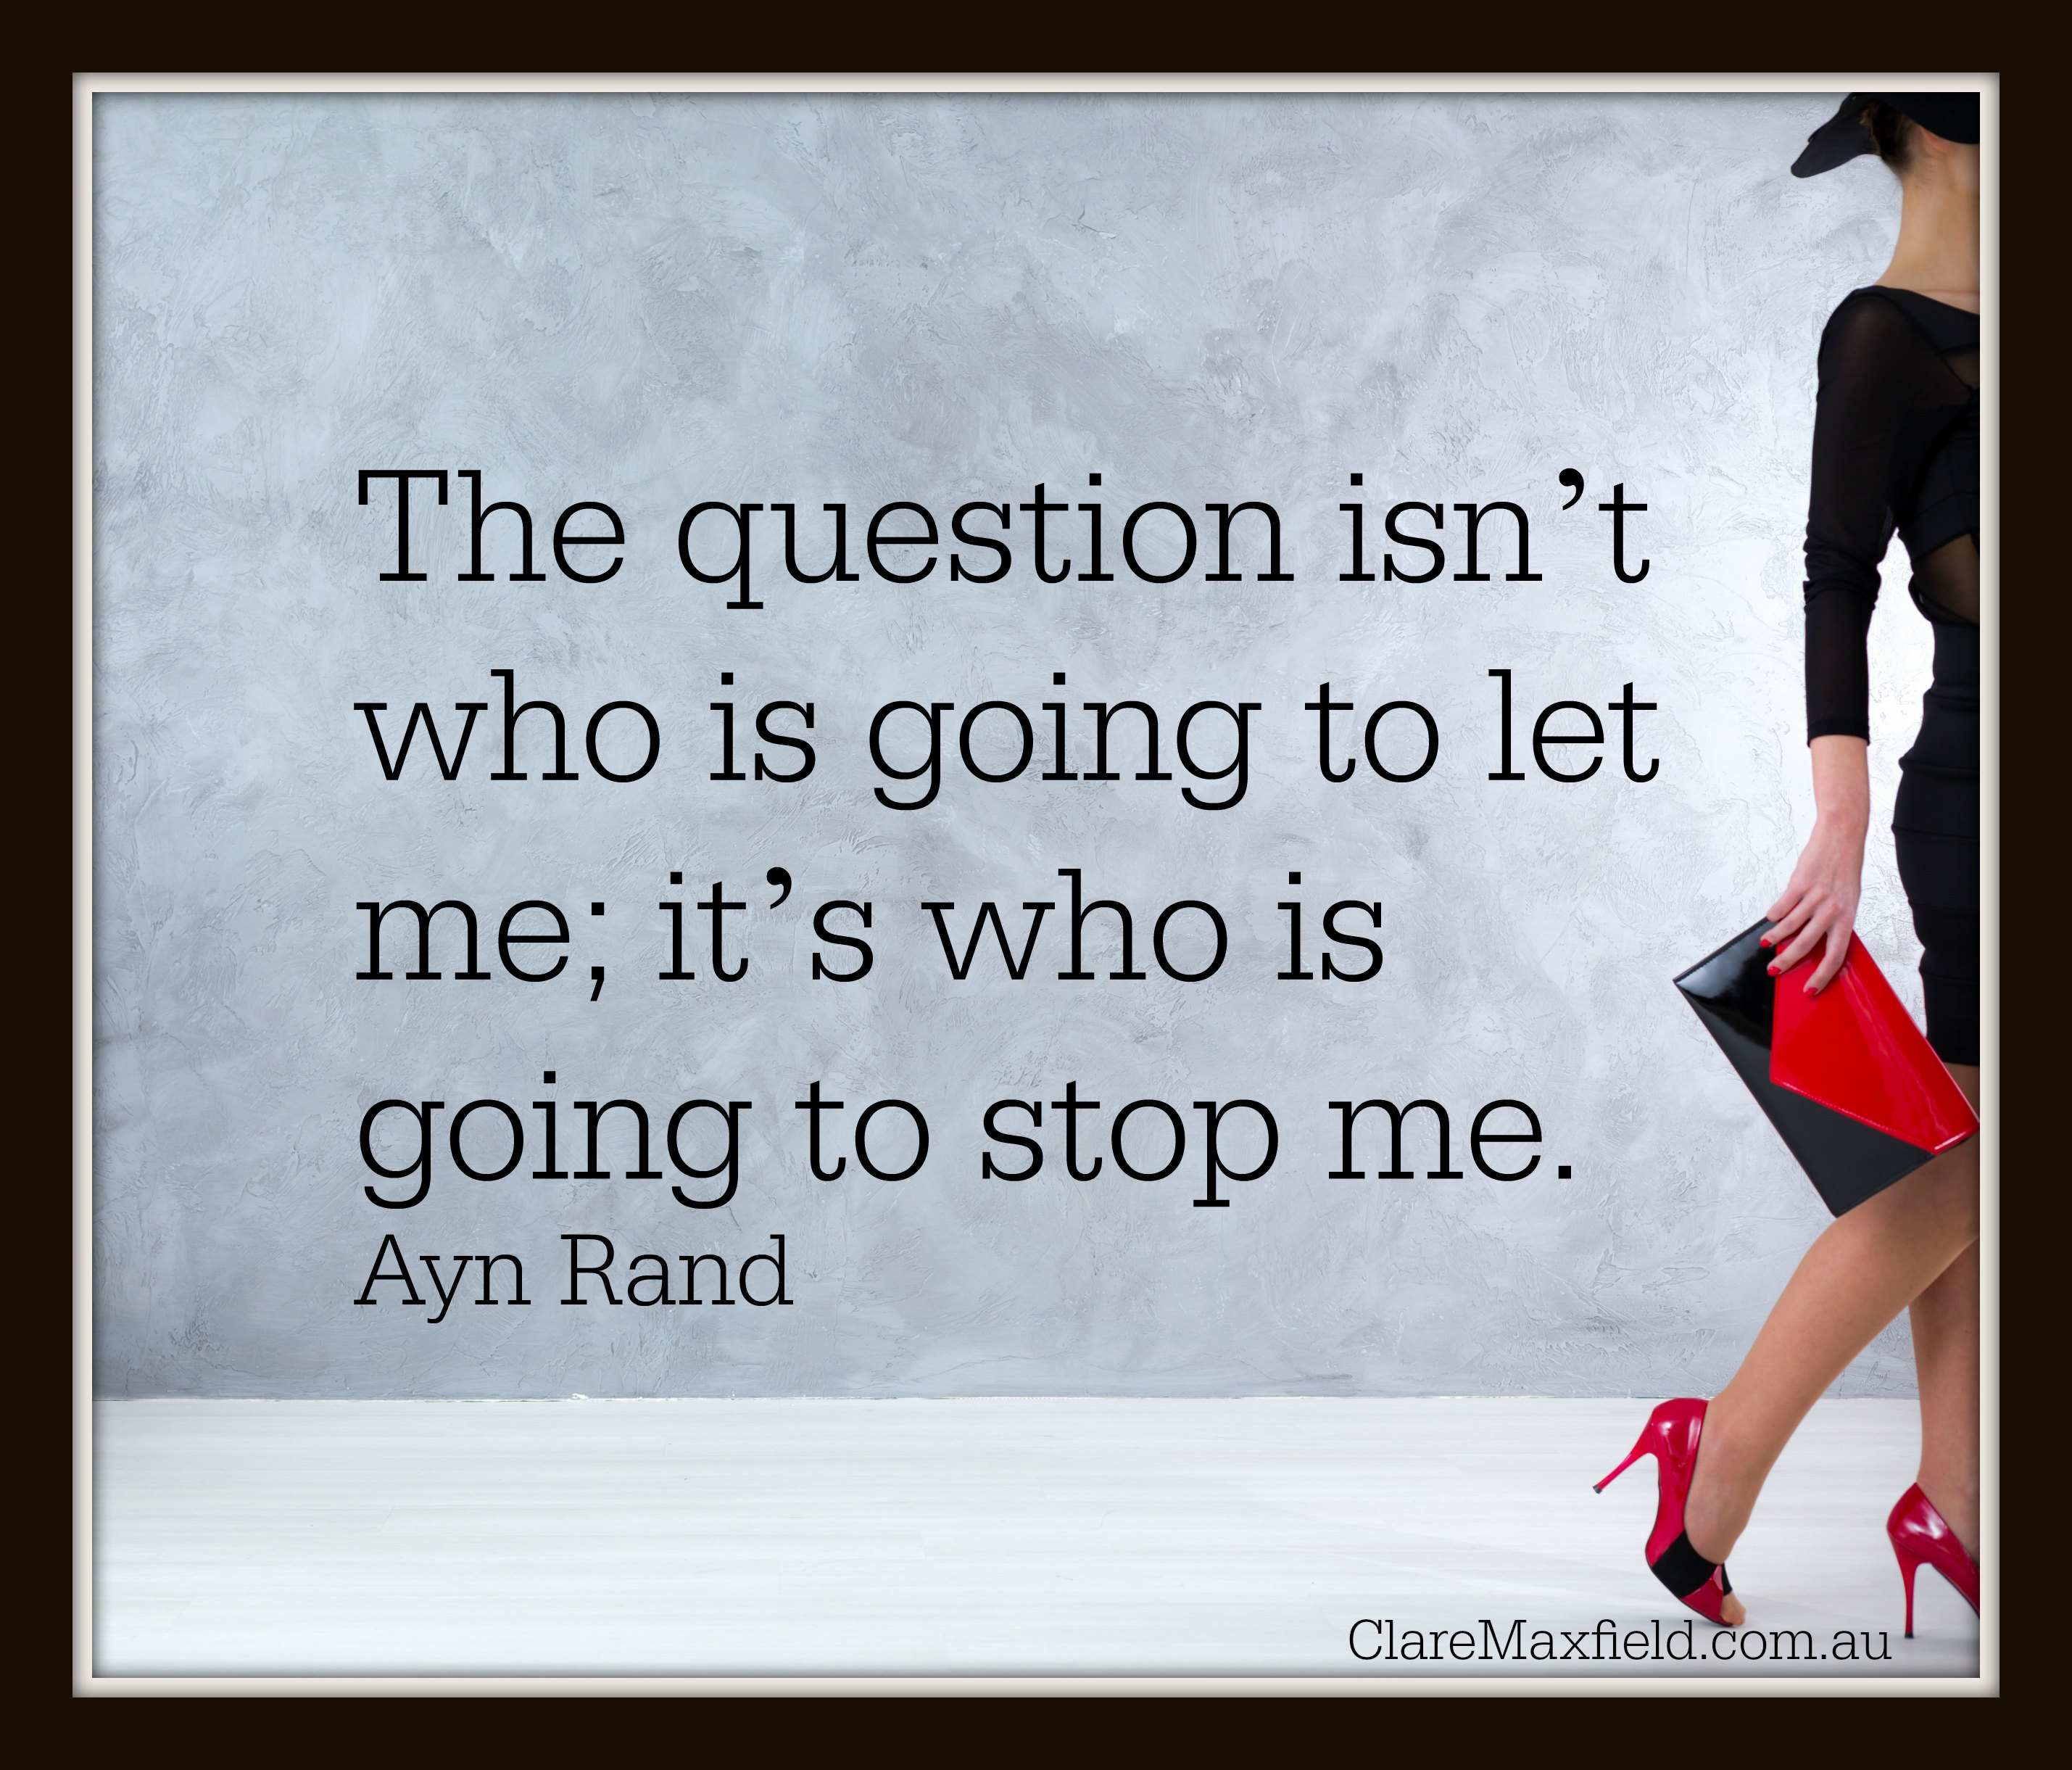 The question isn't who is going to let me; it's who is going to stop me. —Ayn Rand